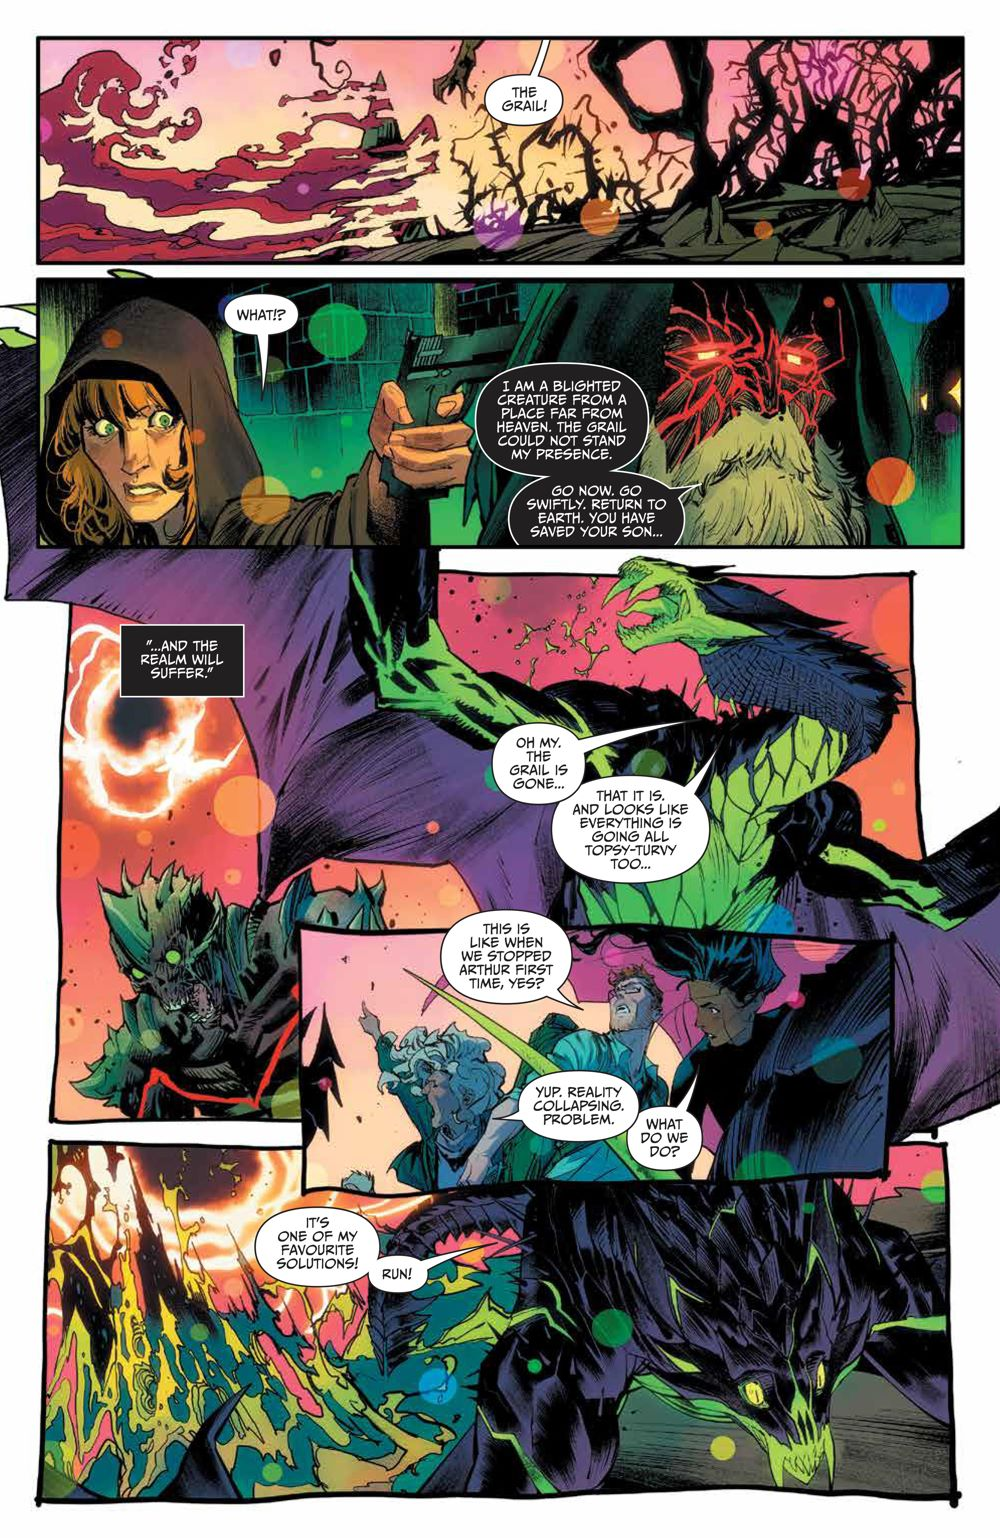 OnceFuture_018_PRESS_7 ComicList Previews: ONCE AND FUTURE #18